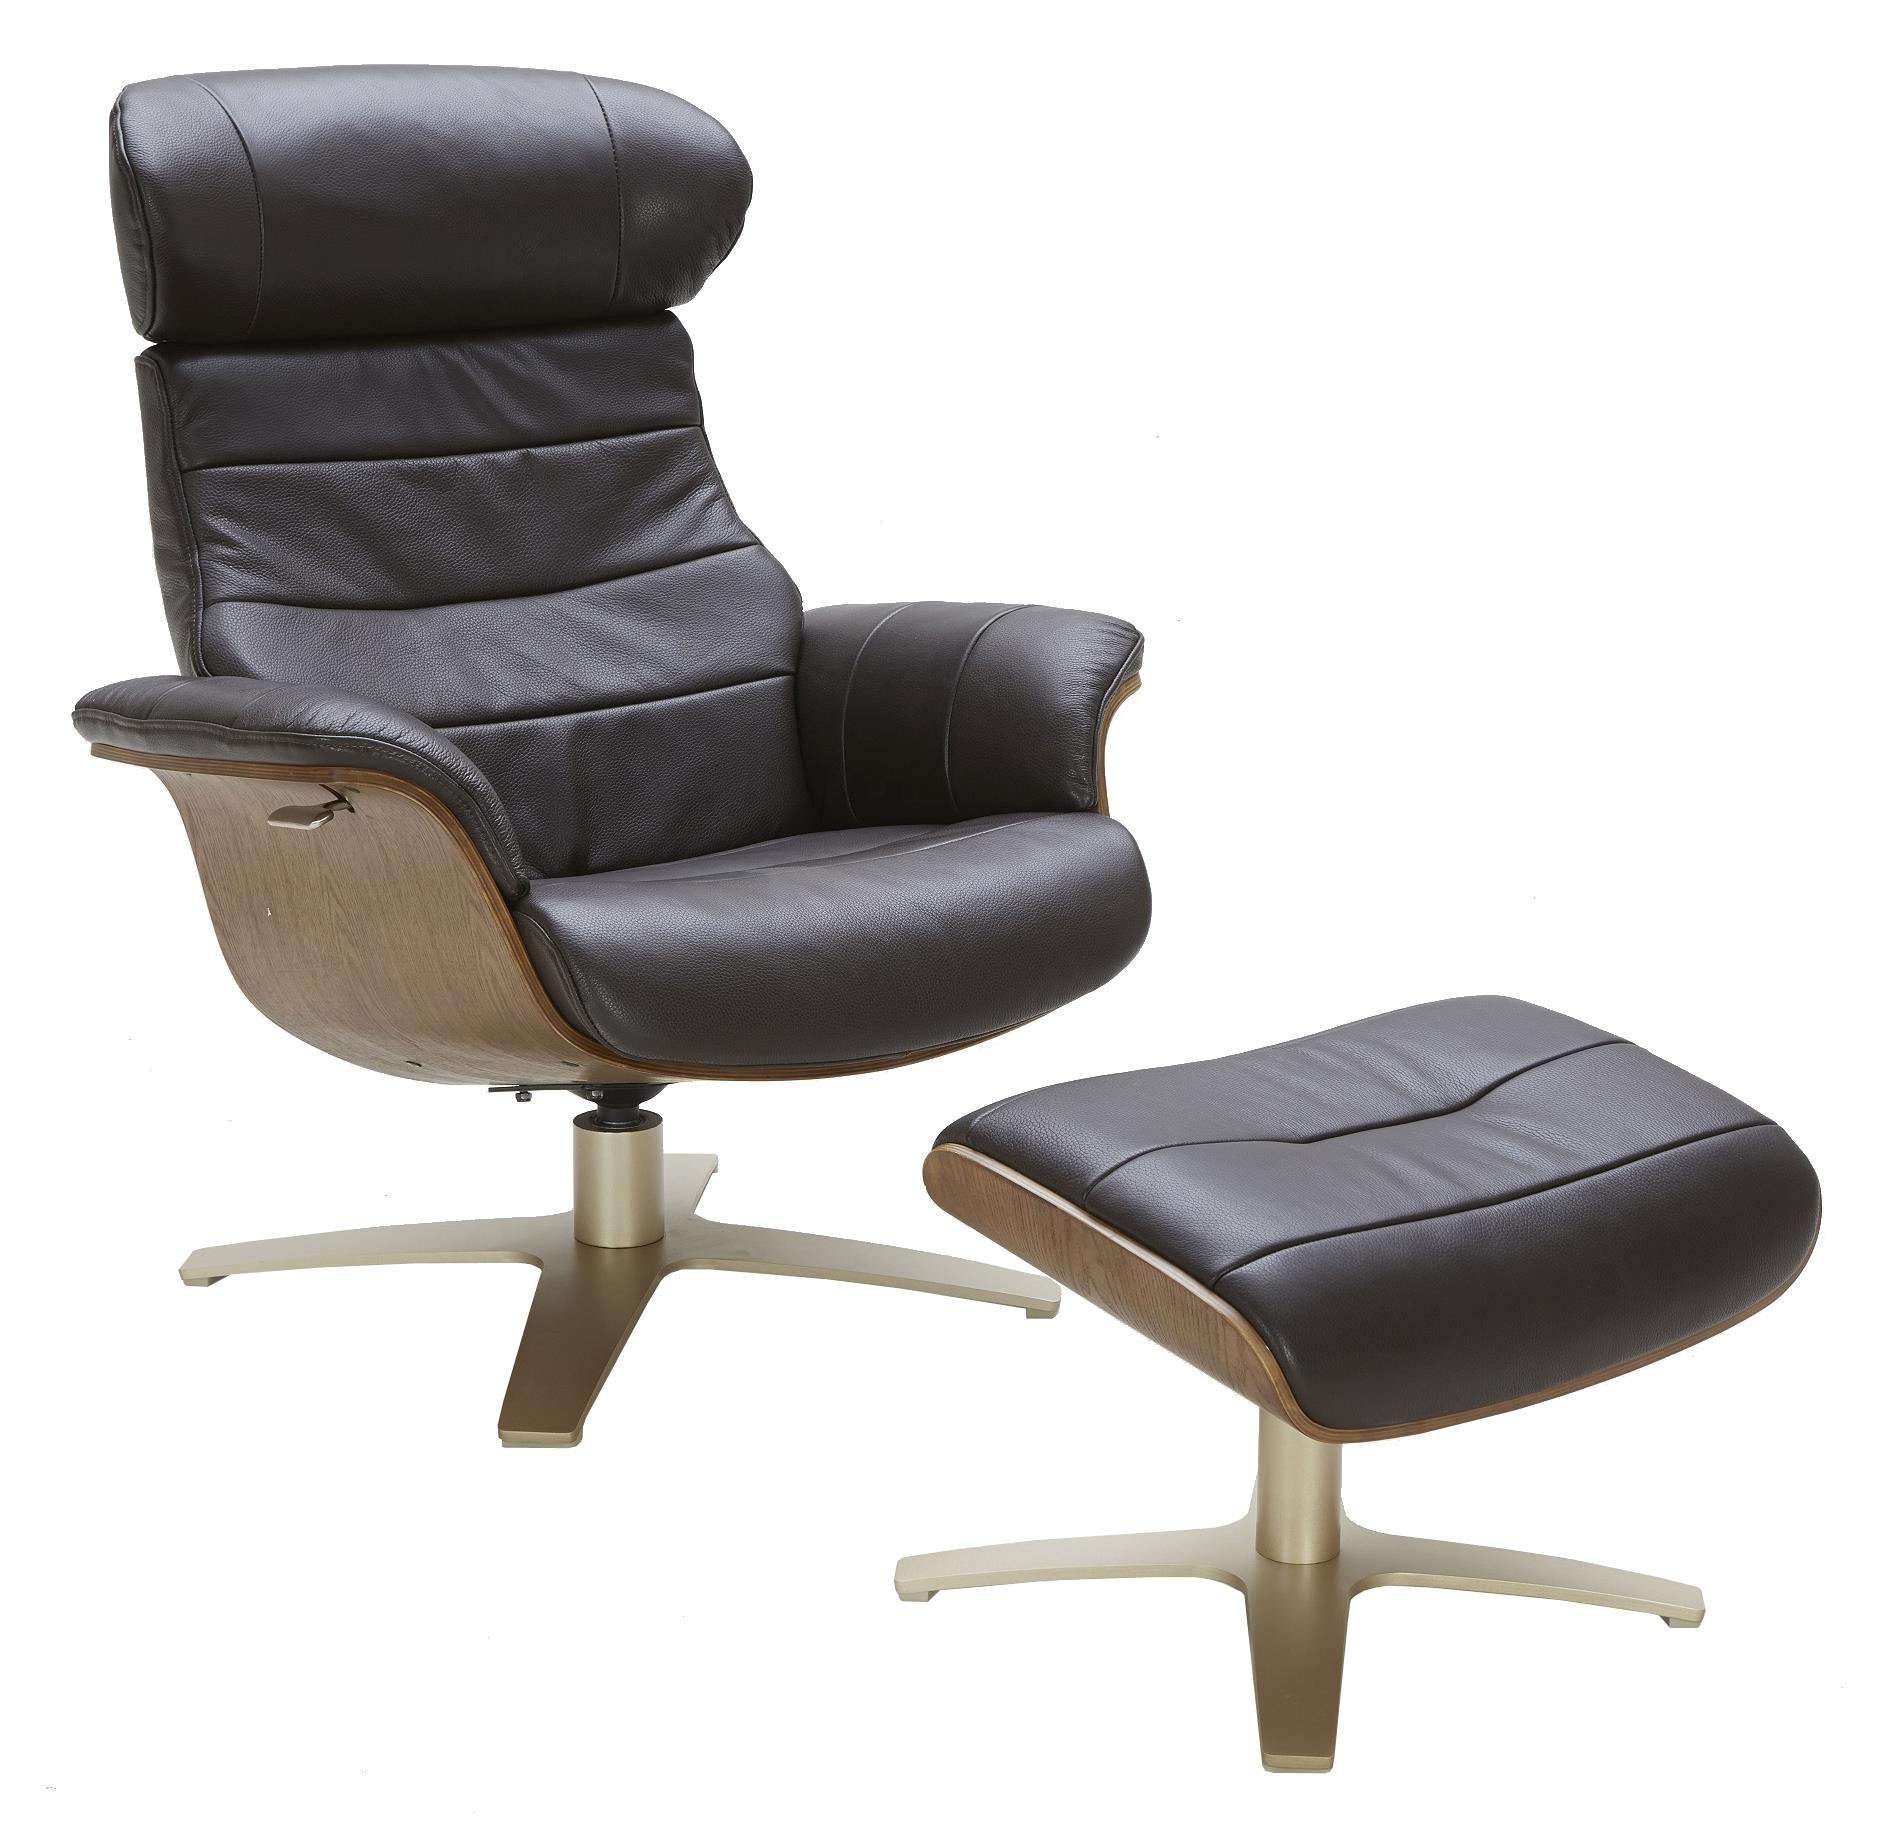 Urban Evolution Karma Leather Lean-Back Swivel Chair and Ottoman - Item Number: A928-1-2a-S+A928